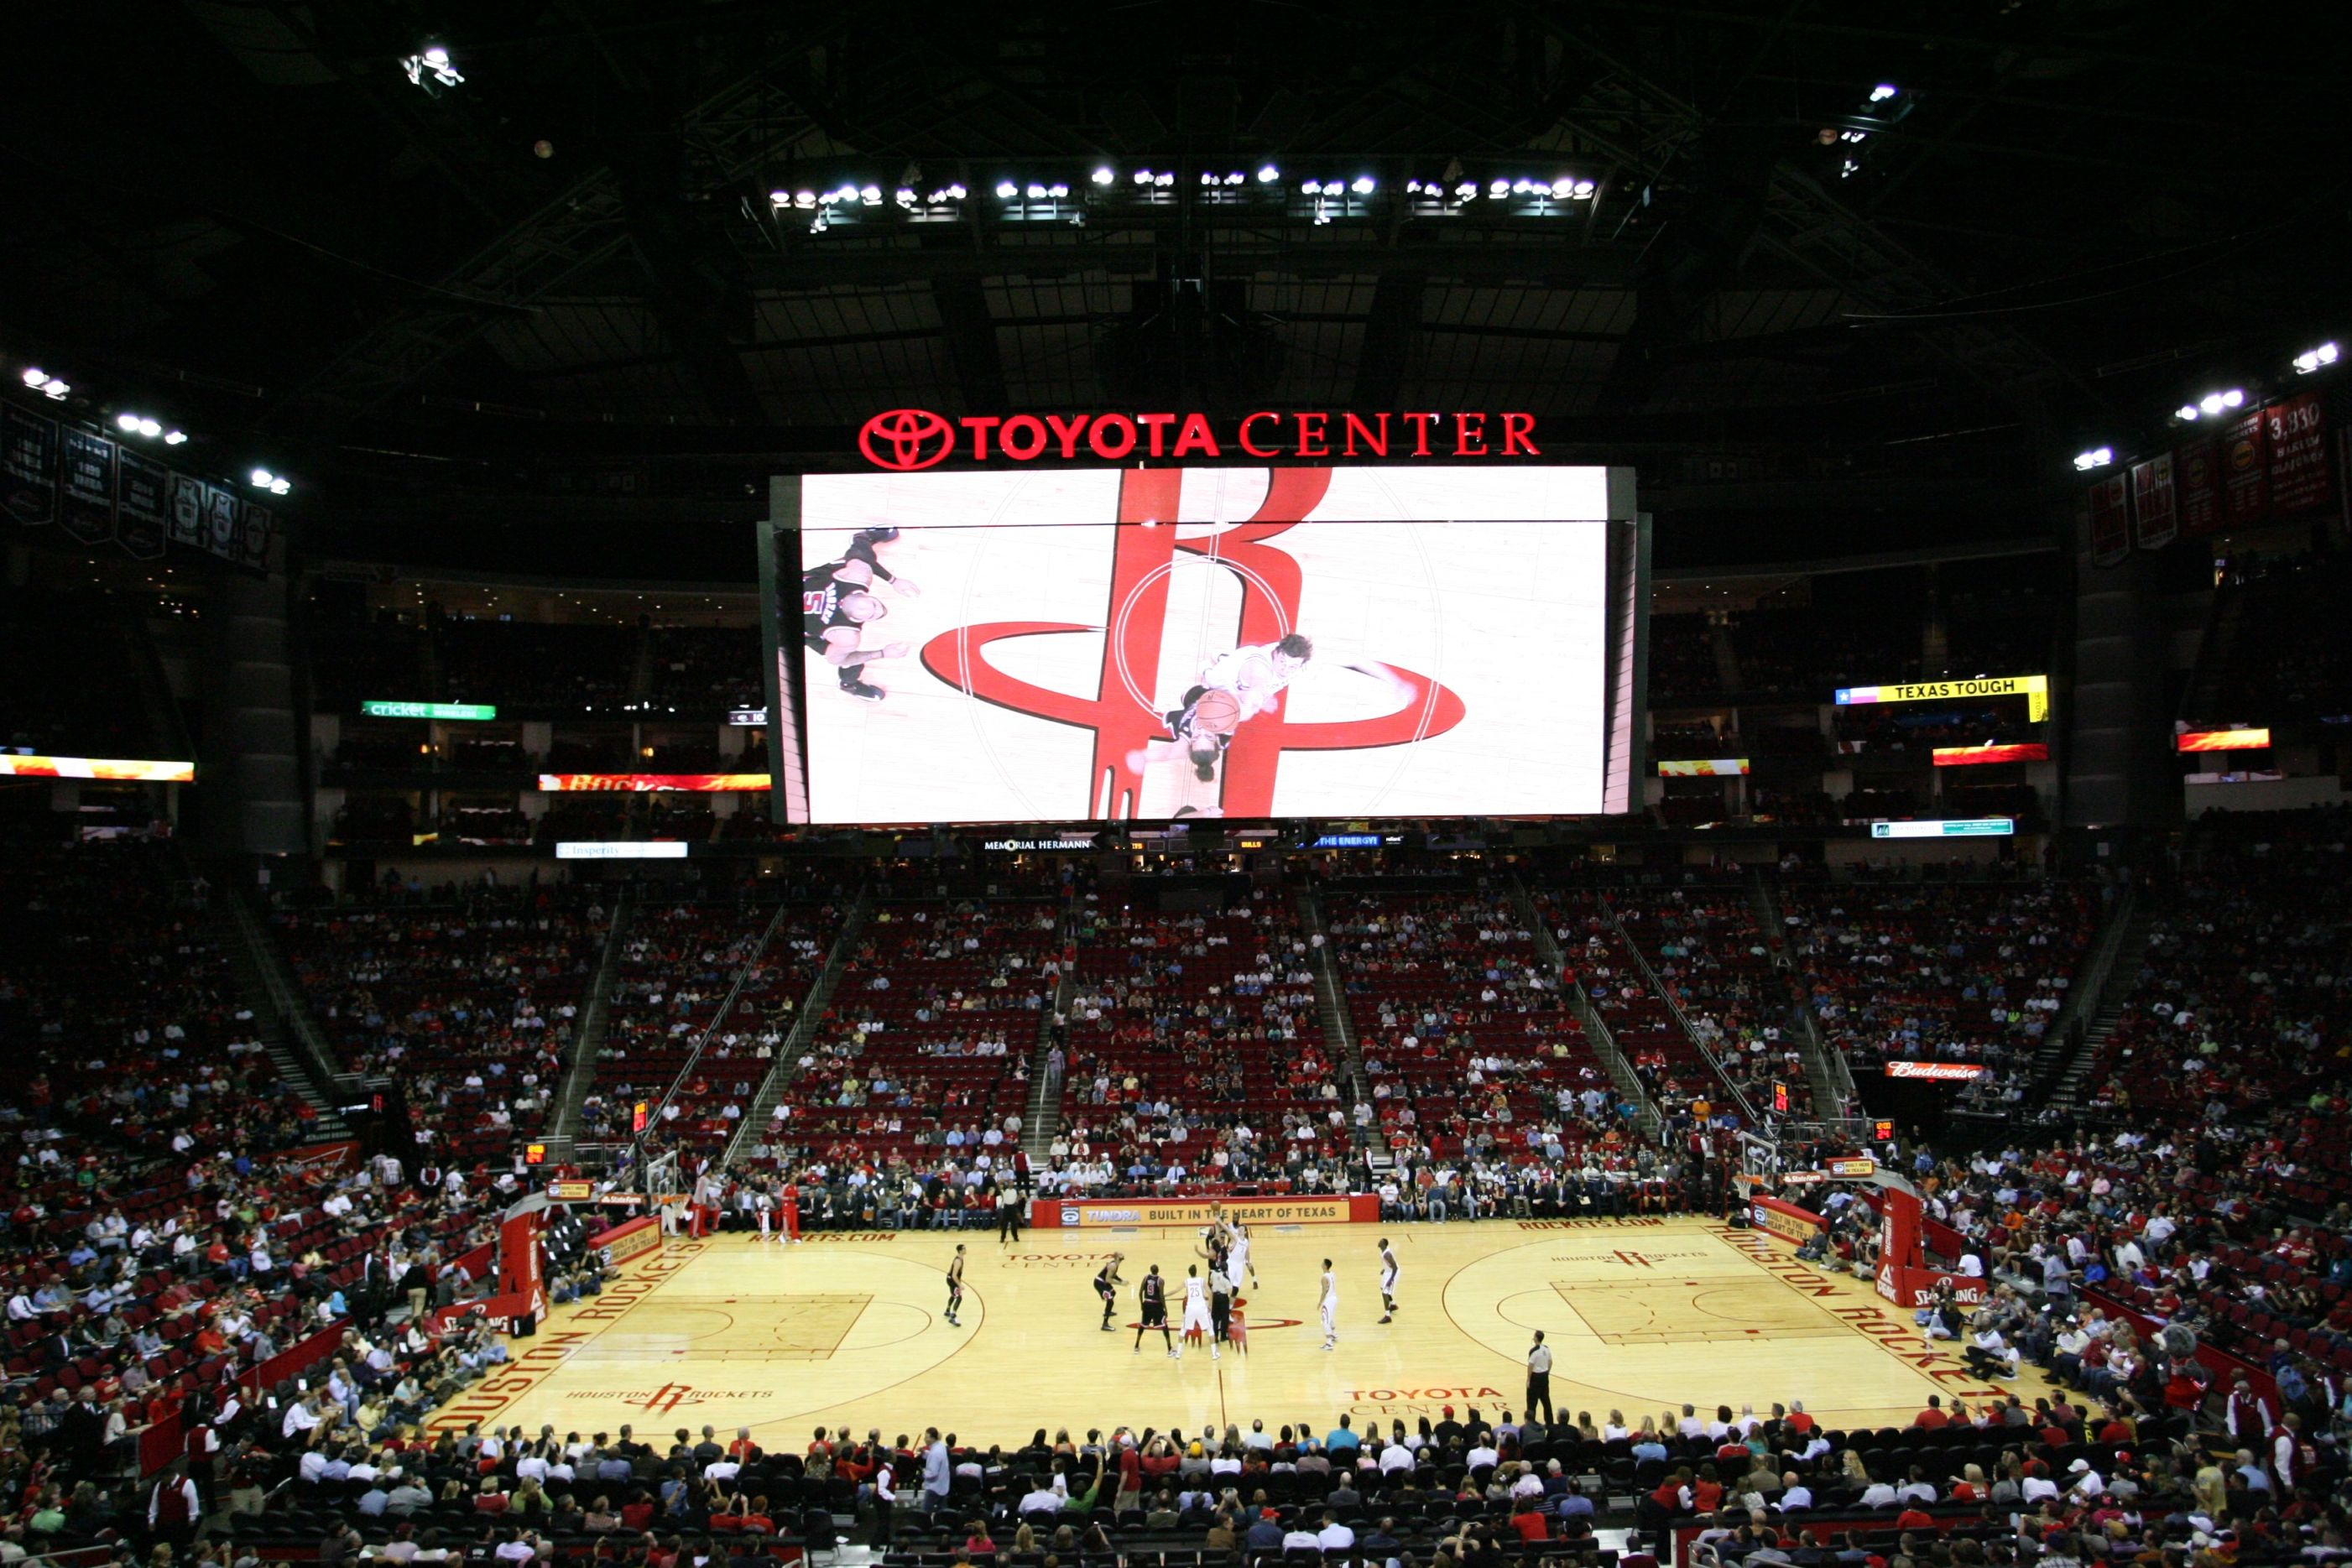 hanging houston concourse rockets journey in banners center stadiums toyota stadium